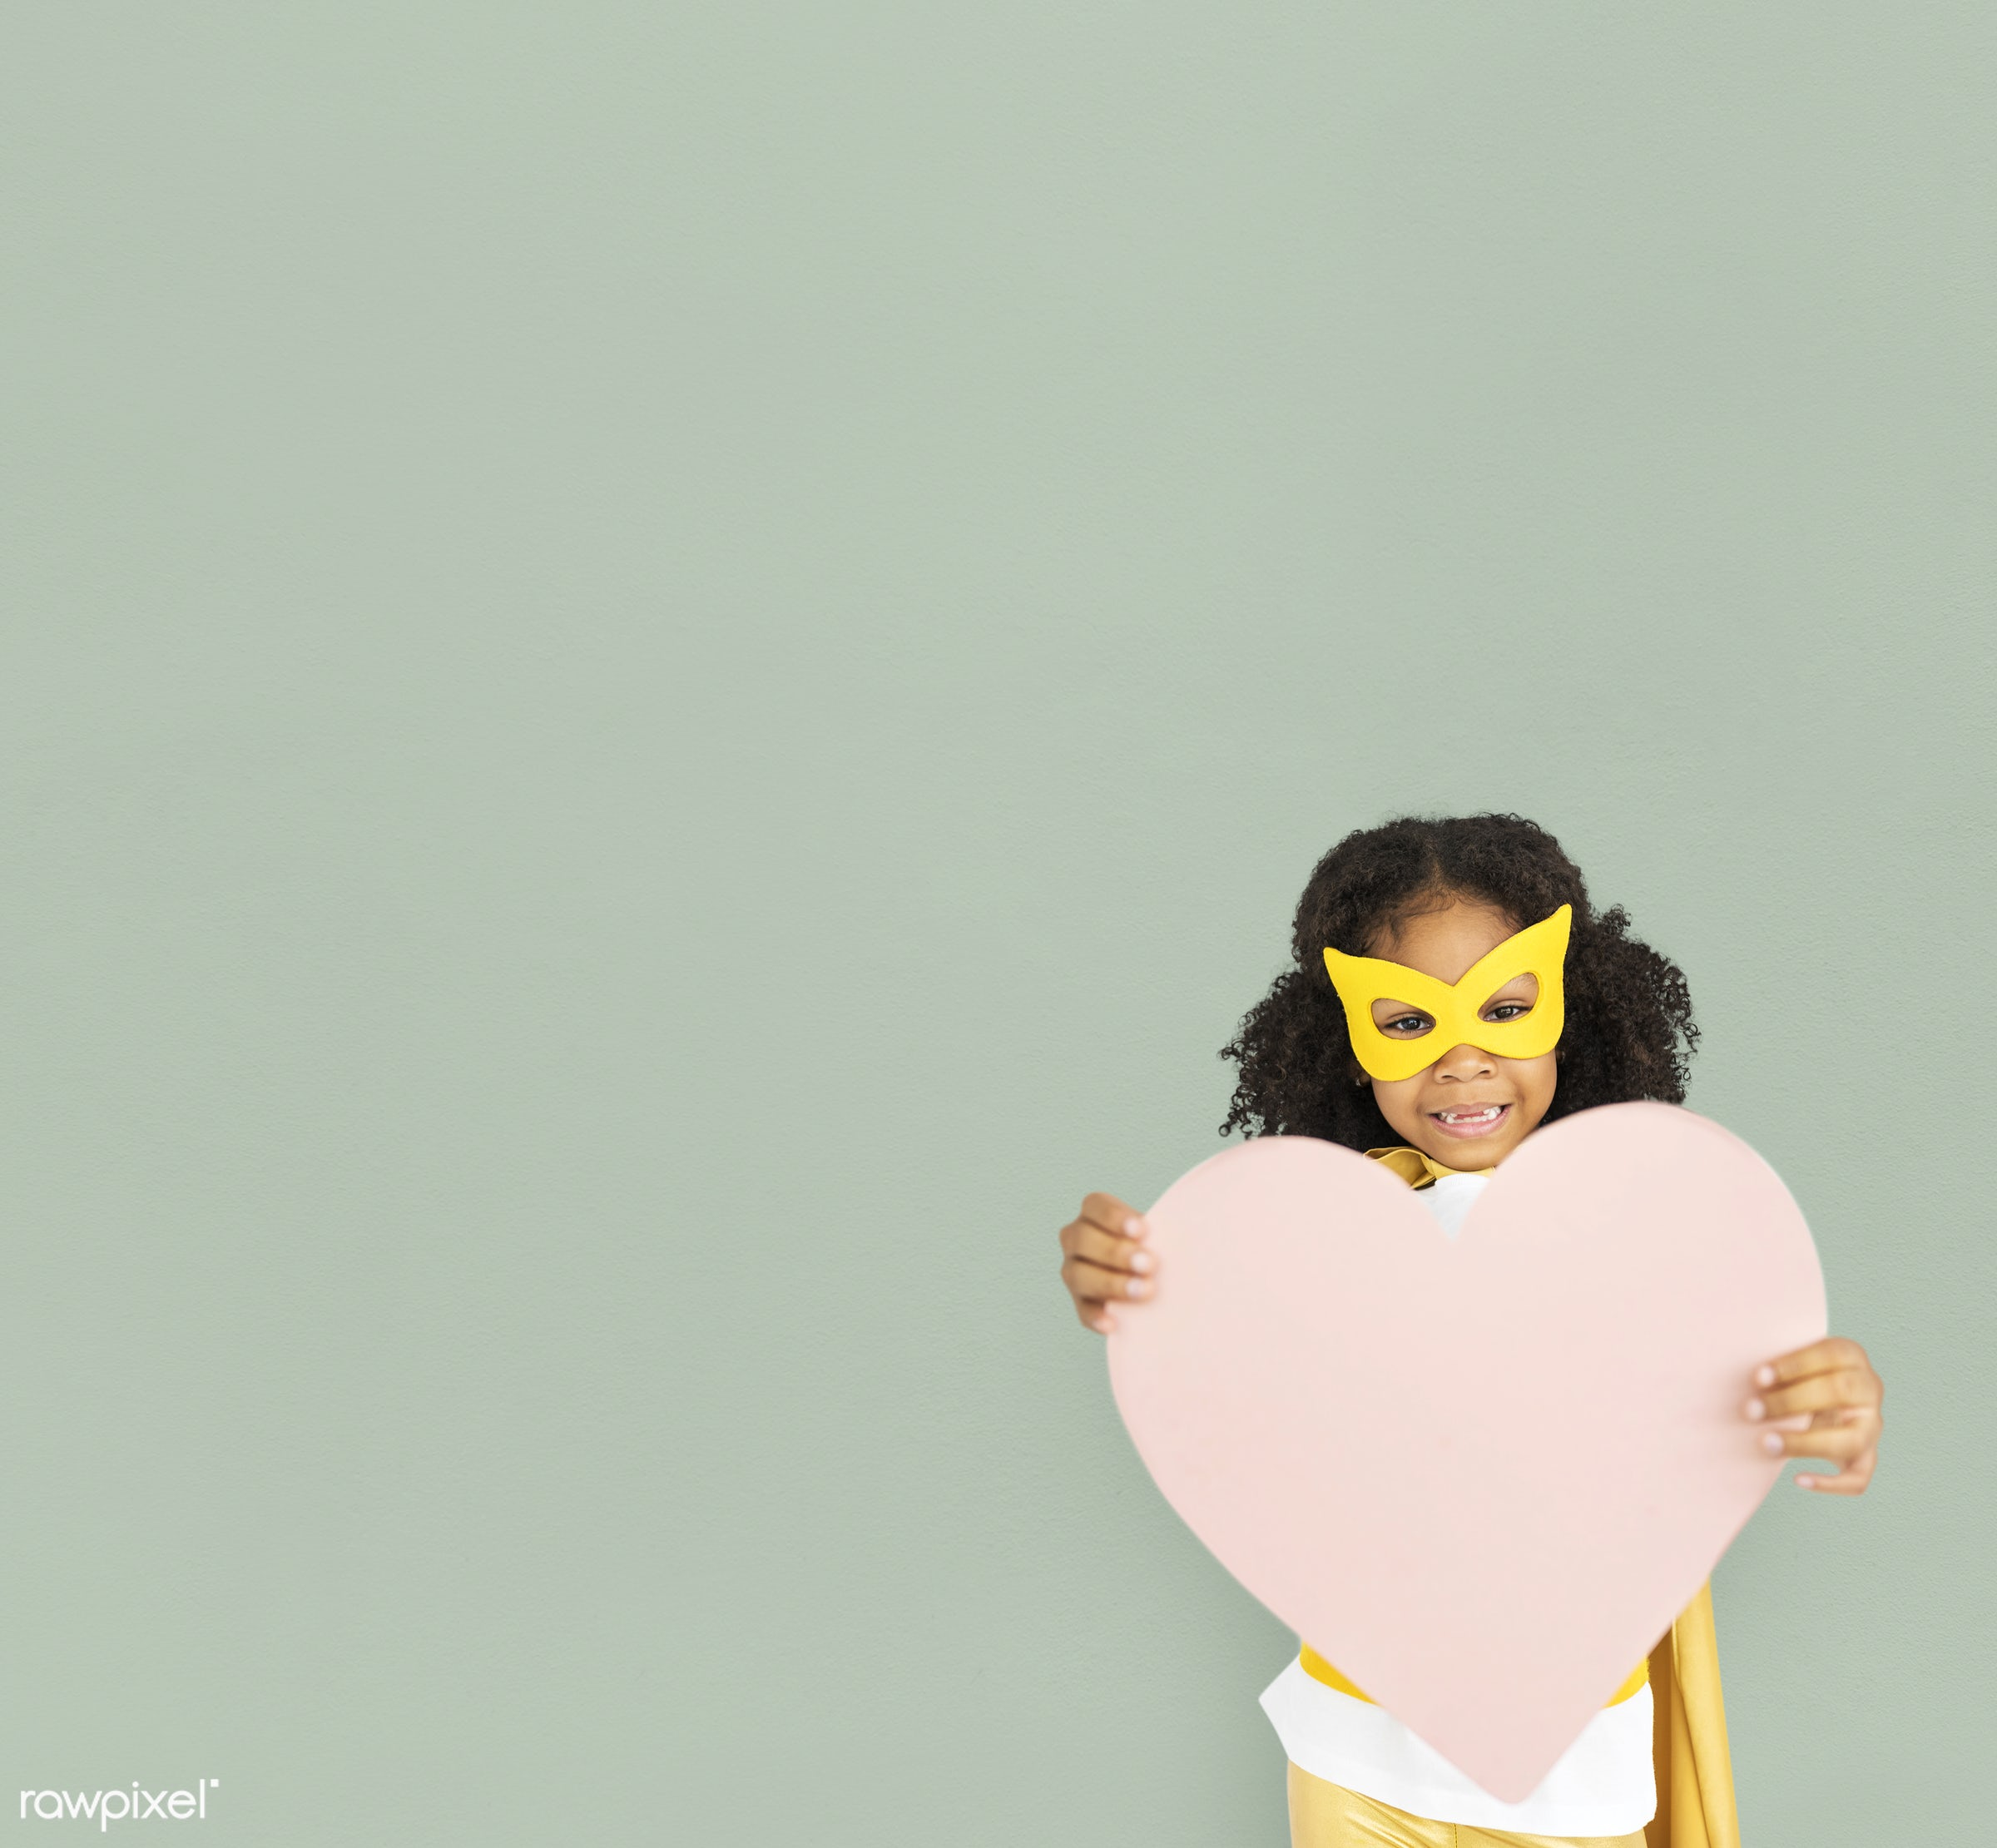 studio, expression, person, holding, mask, people, kid, love, solo, childhood, smile, cheerful, smiling, isolated, little...